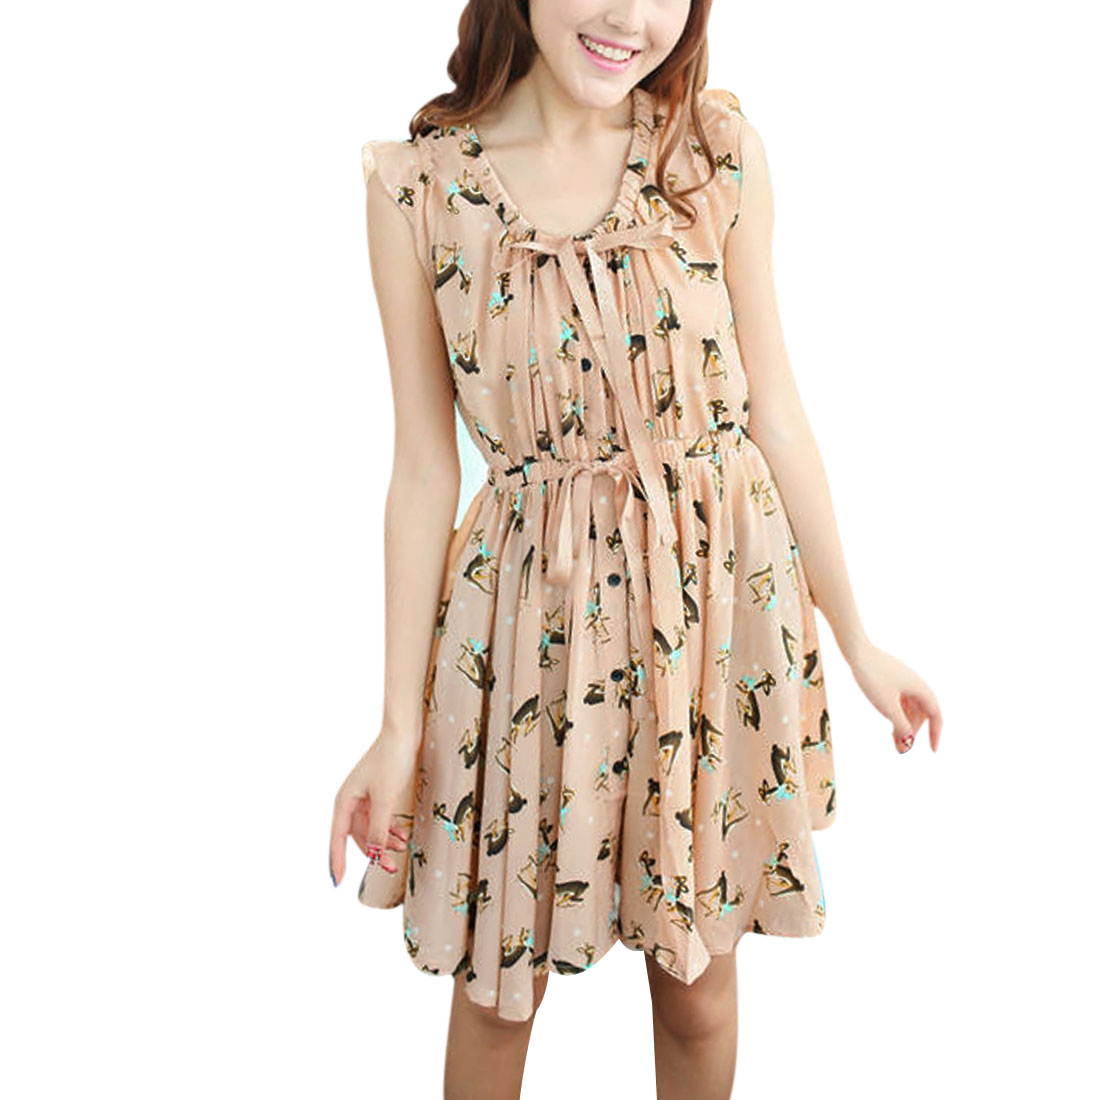 Ladies Above Knee Deer Prints Chiffon Drawstring Dress Apricot S